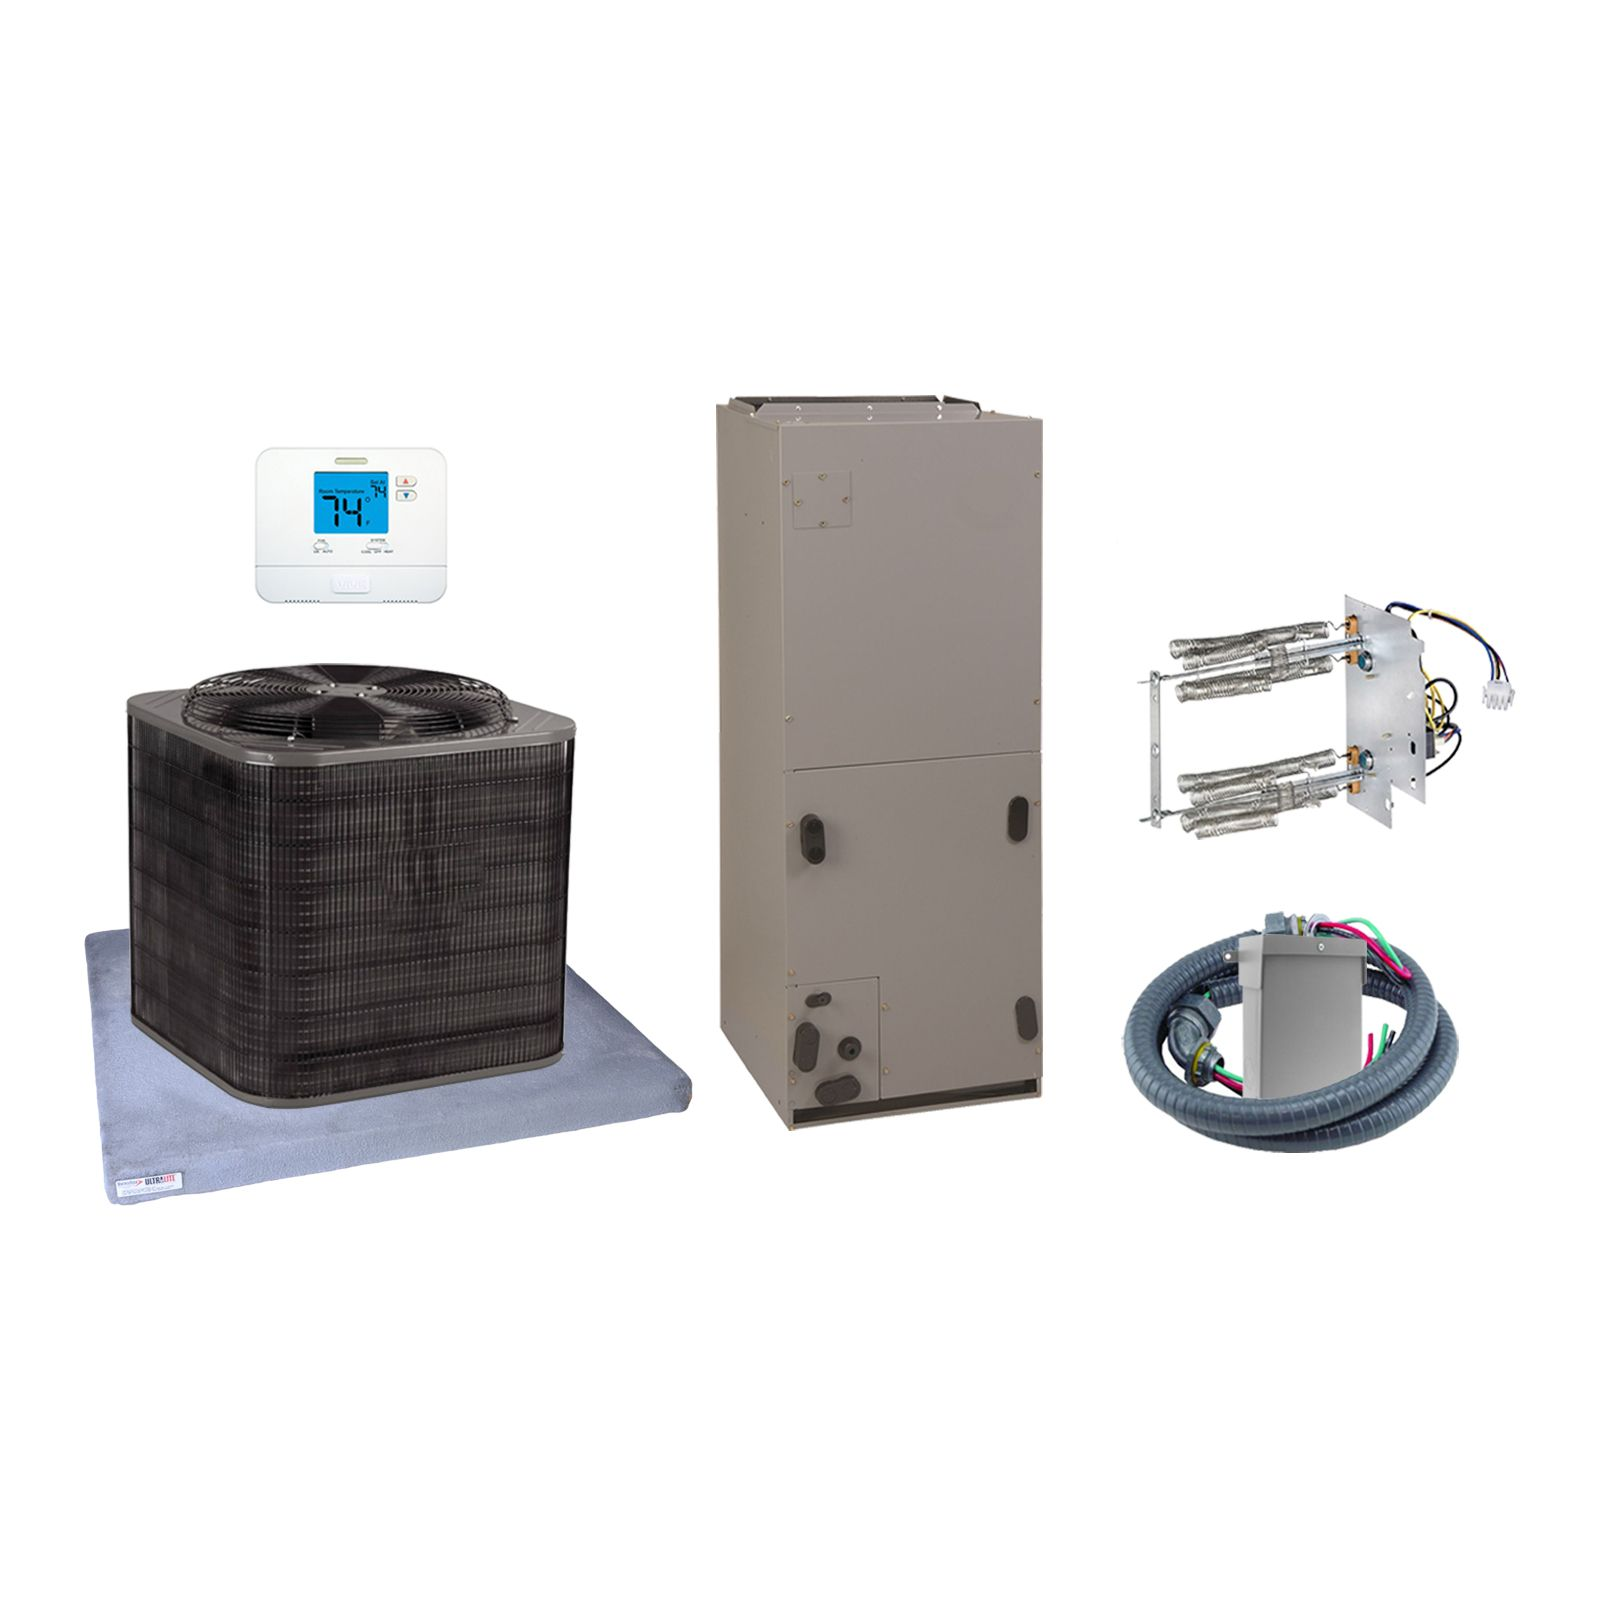 EcoTemp (AHRI 7659147) 3 1/2 Ton, 14 SEER/11.5 EER Horizontal Air Conditioner Split System and Install Kit